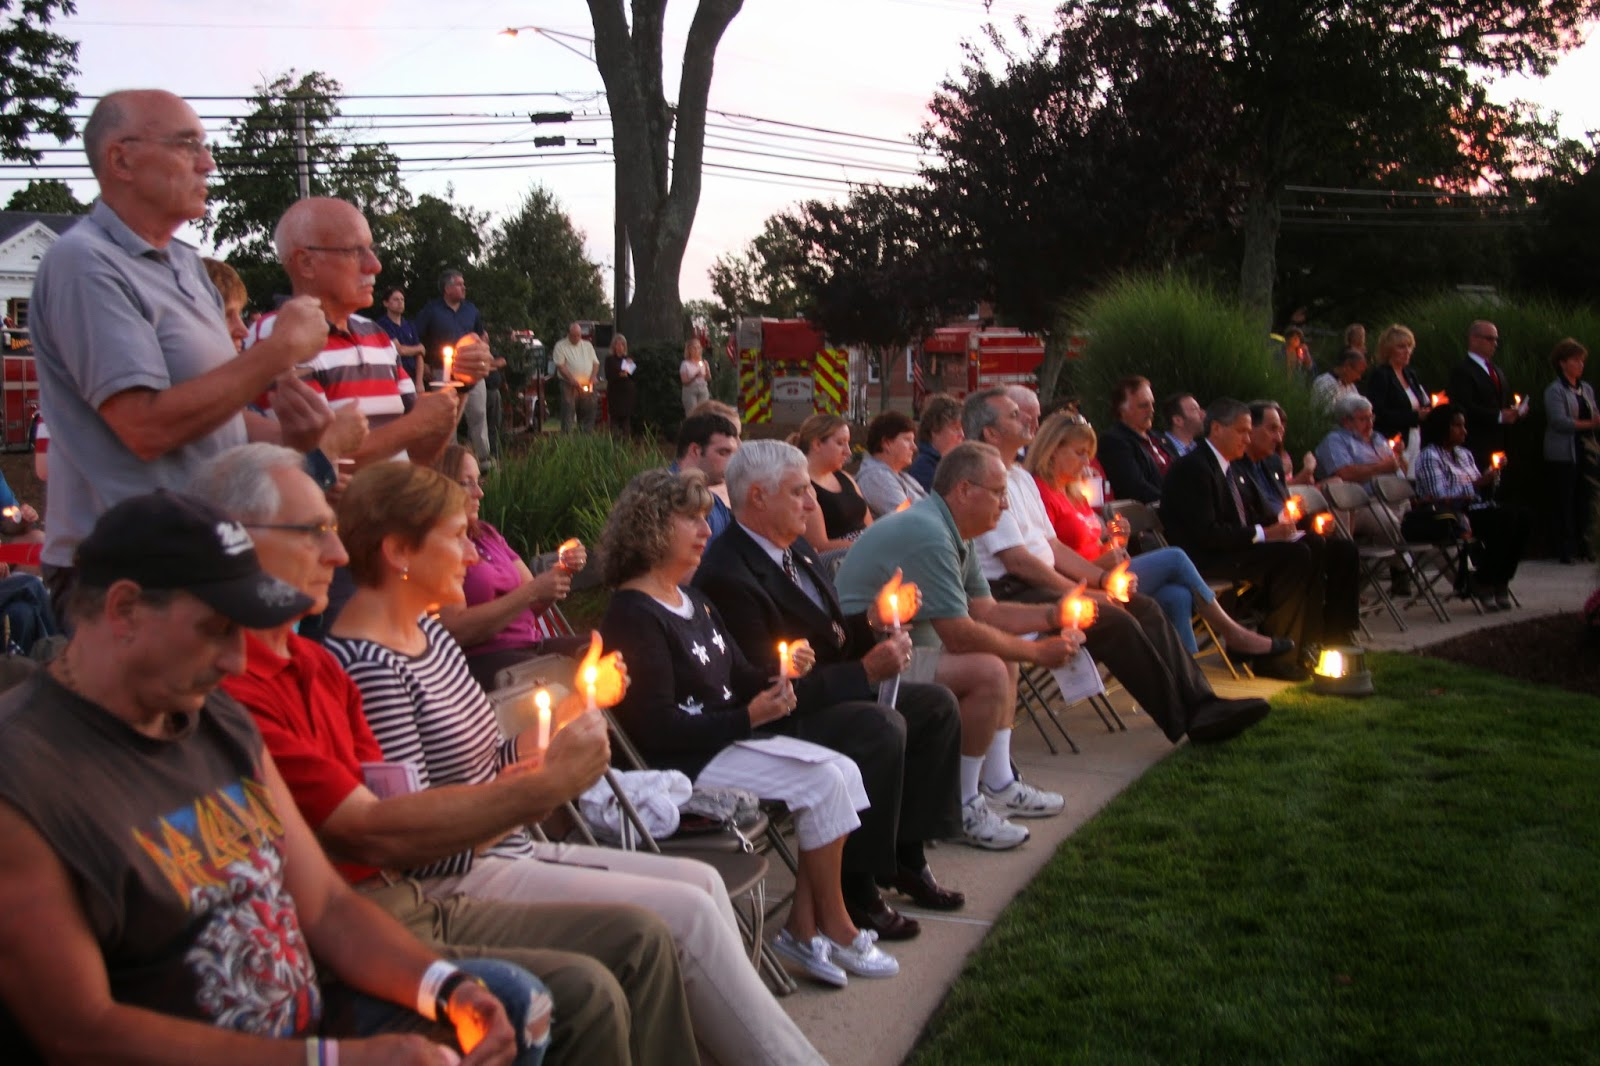 Morris County Remembers Those Lost on 9-11